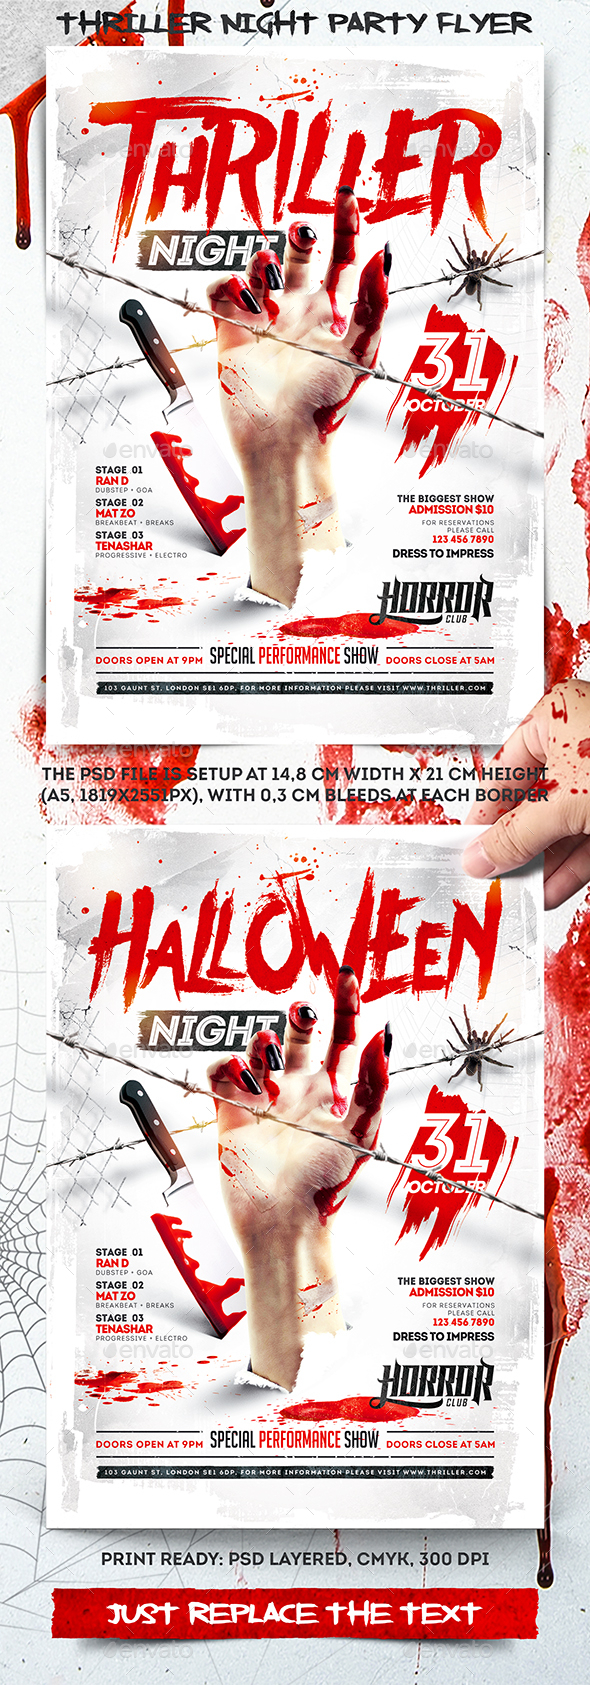 Thriller Night Party Flyer